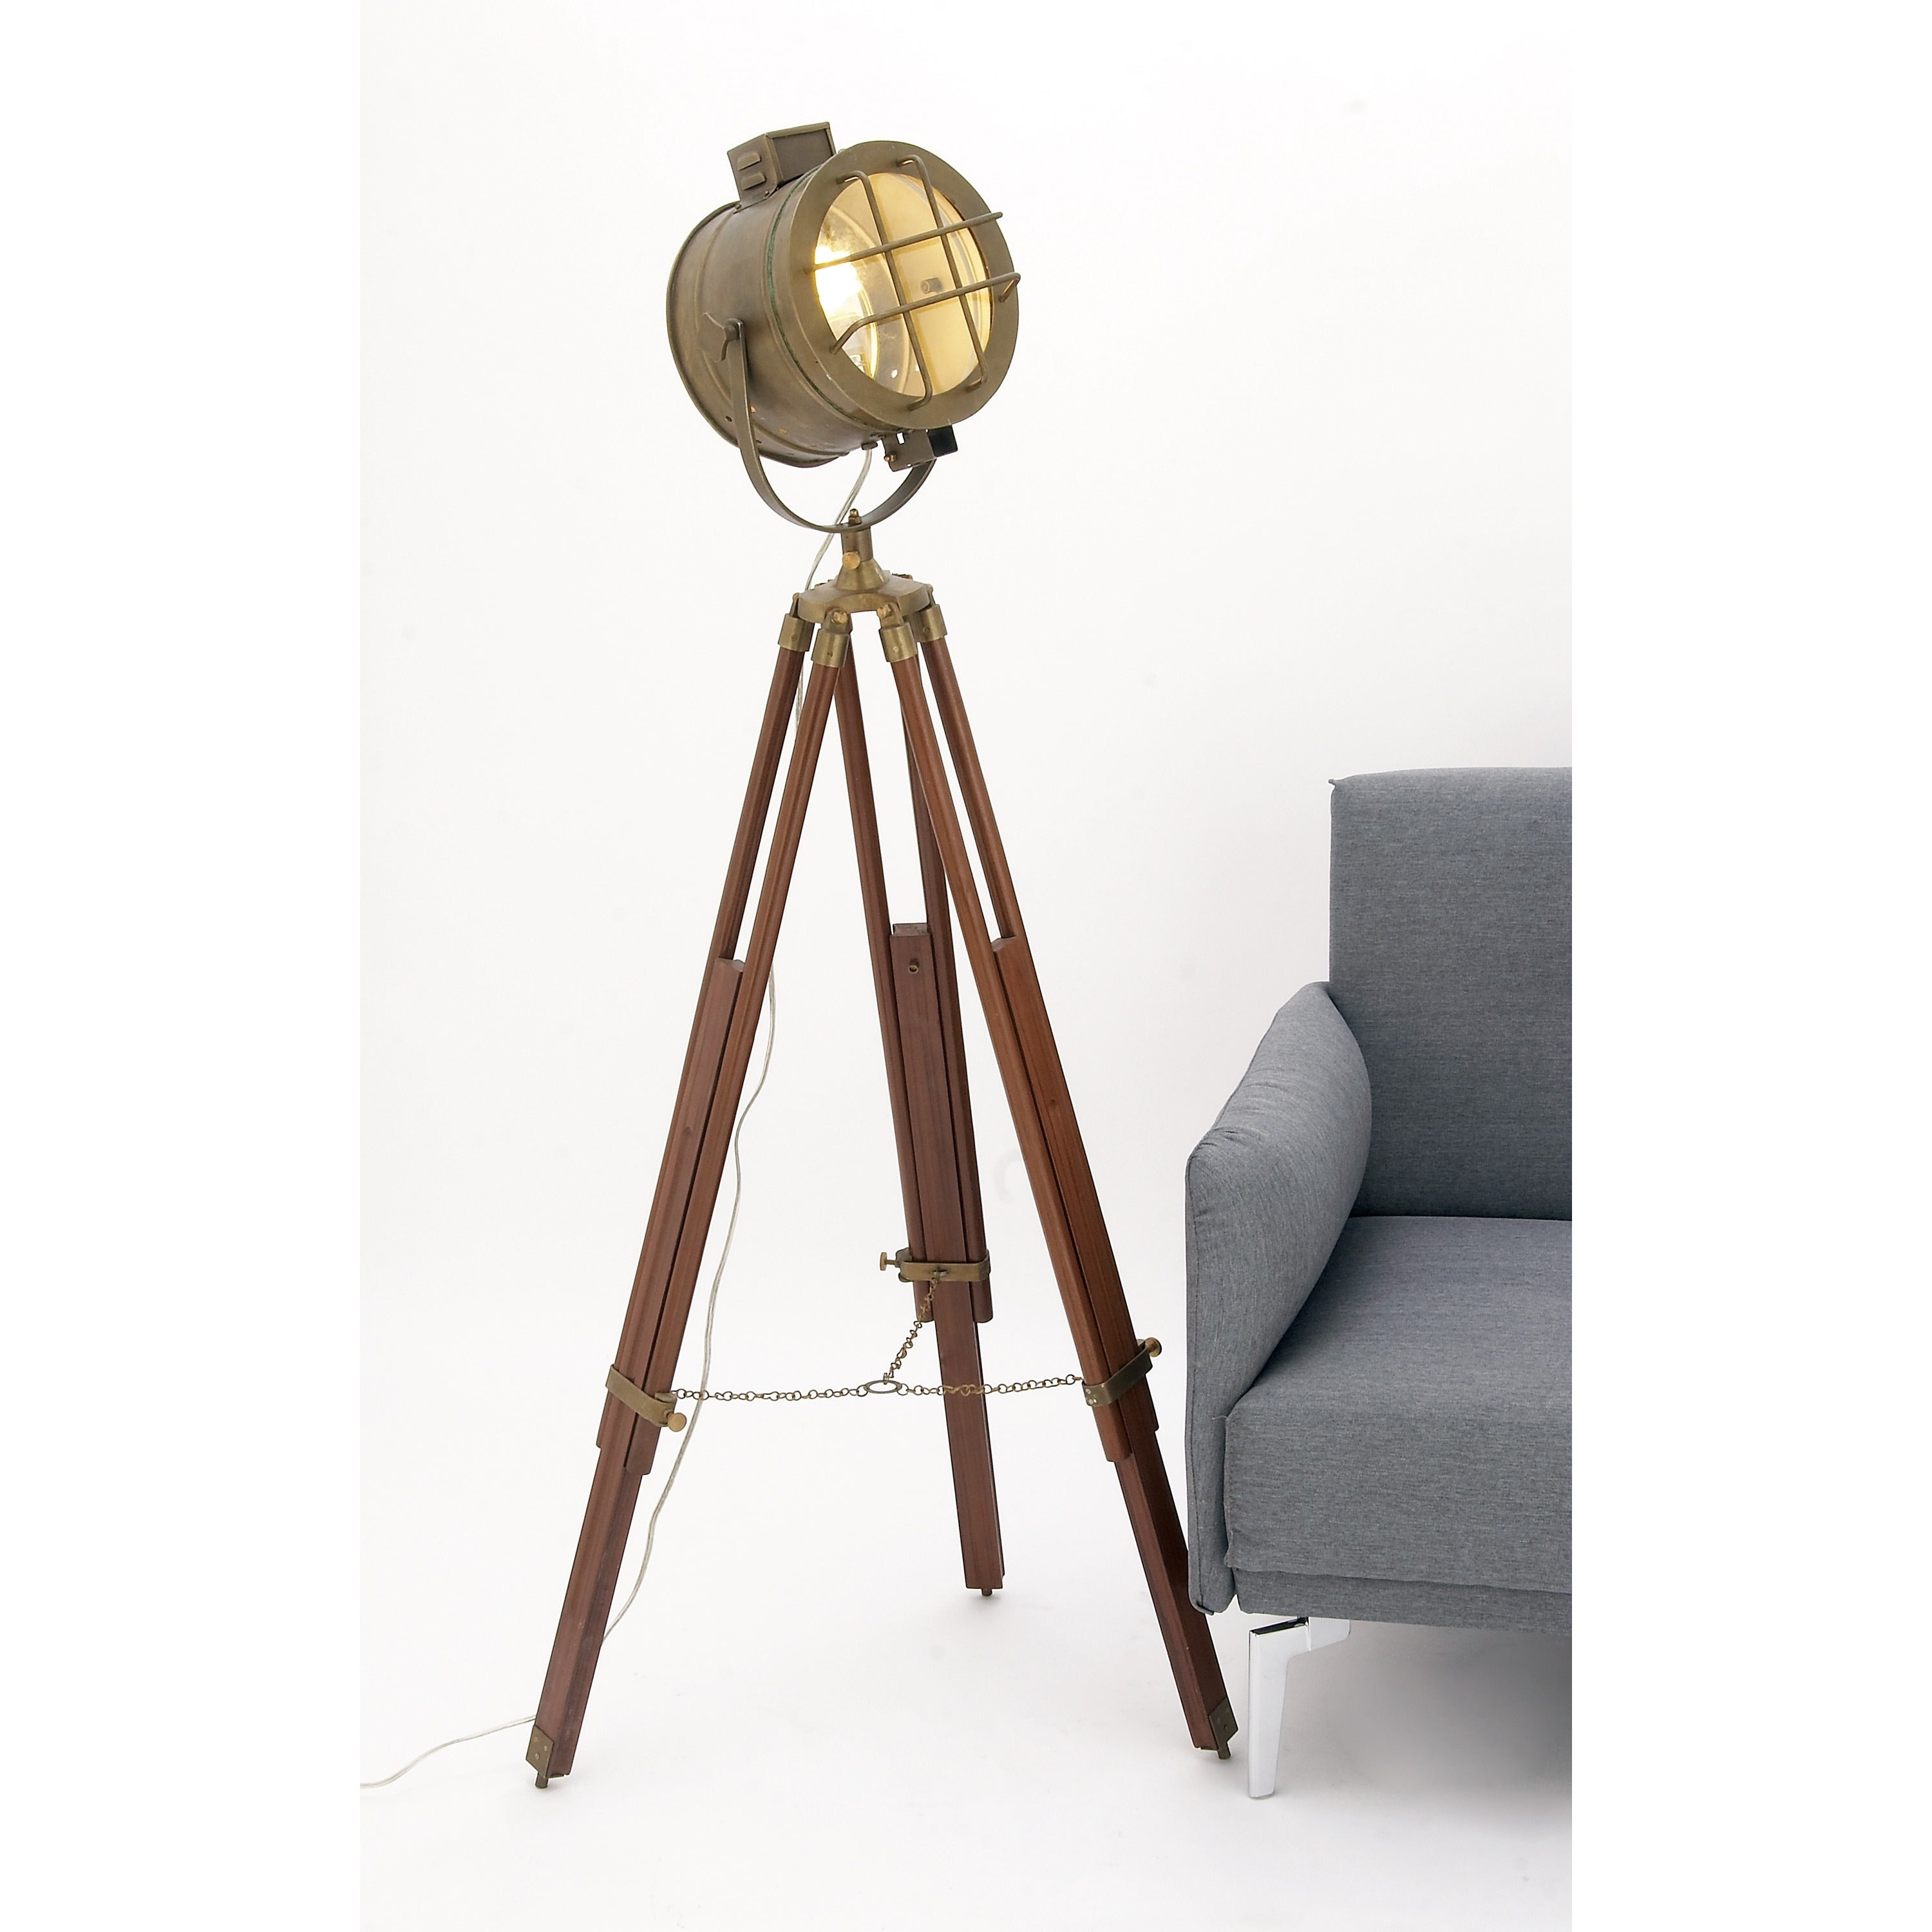 Cinema Studio Floor Prop Light with Tripod Lamp - Free Shipping ...